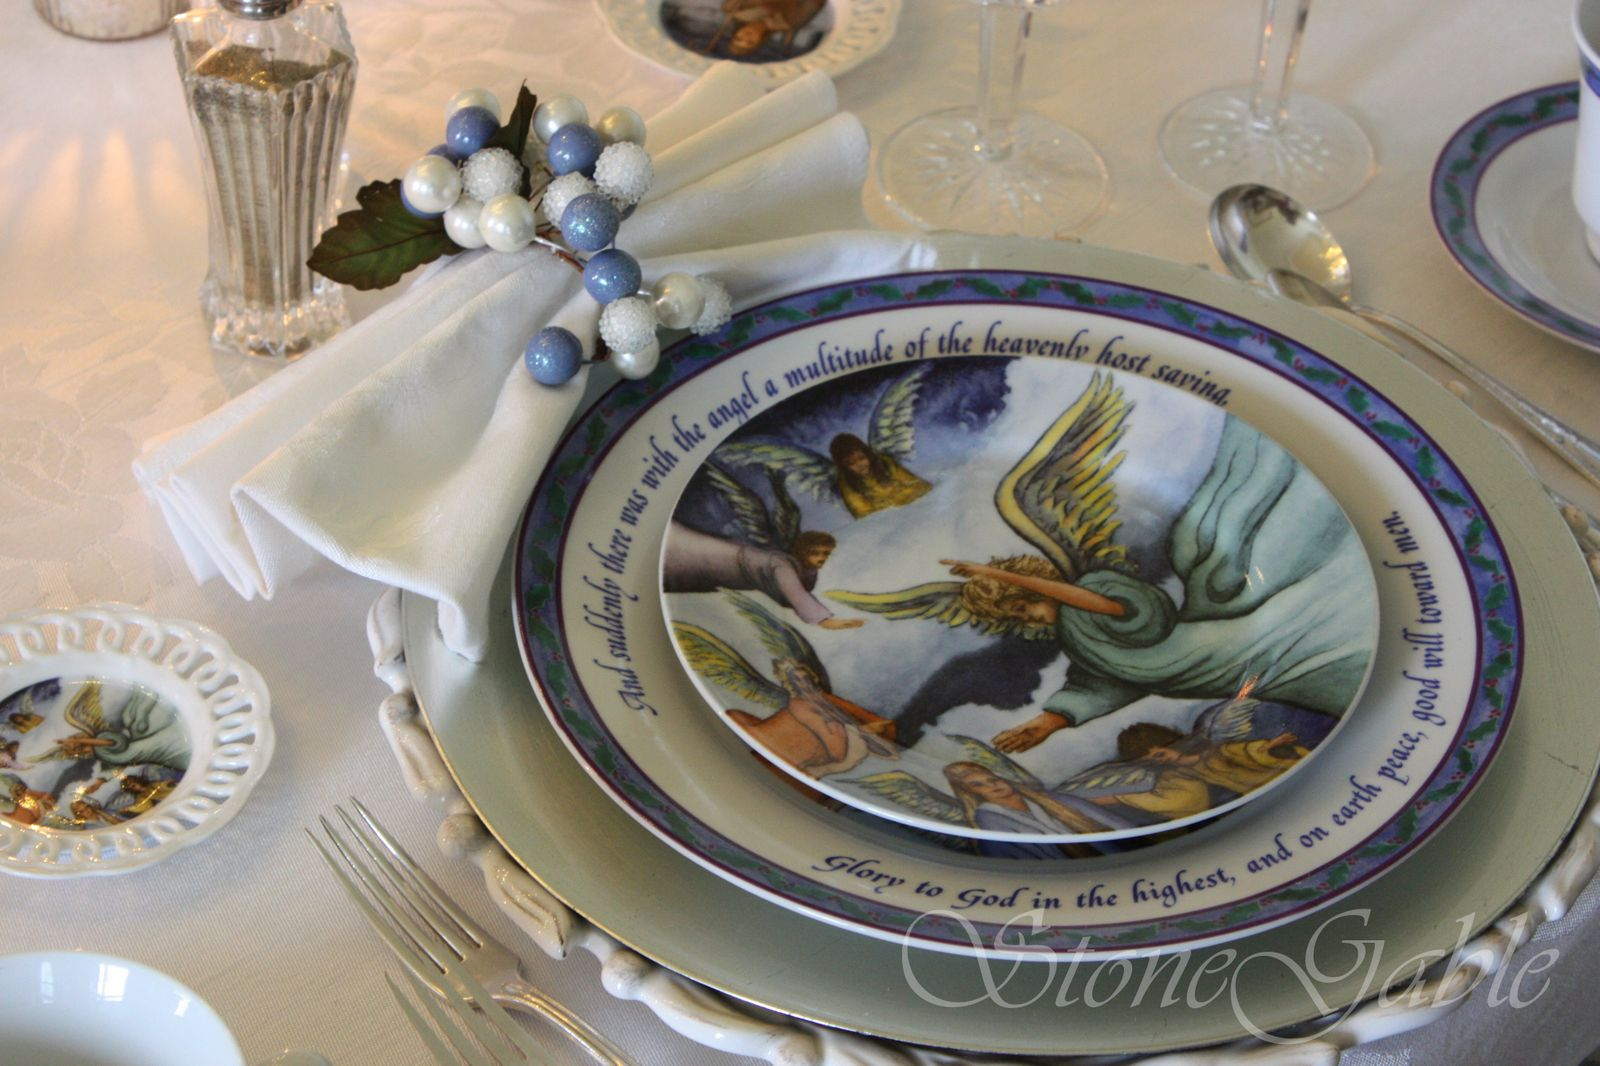 Vintage damask napkins are folded to resemble bows. They are gathered up in a napkin ring made out of a floral pick. The pick is bent into a circle. & Bethlehem Christmas Tablescape - StoneGable